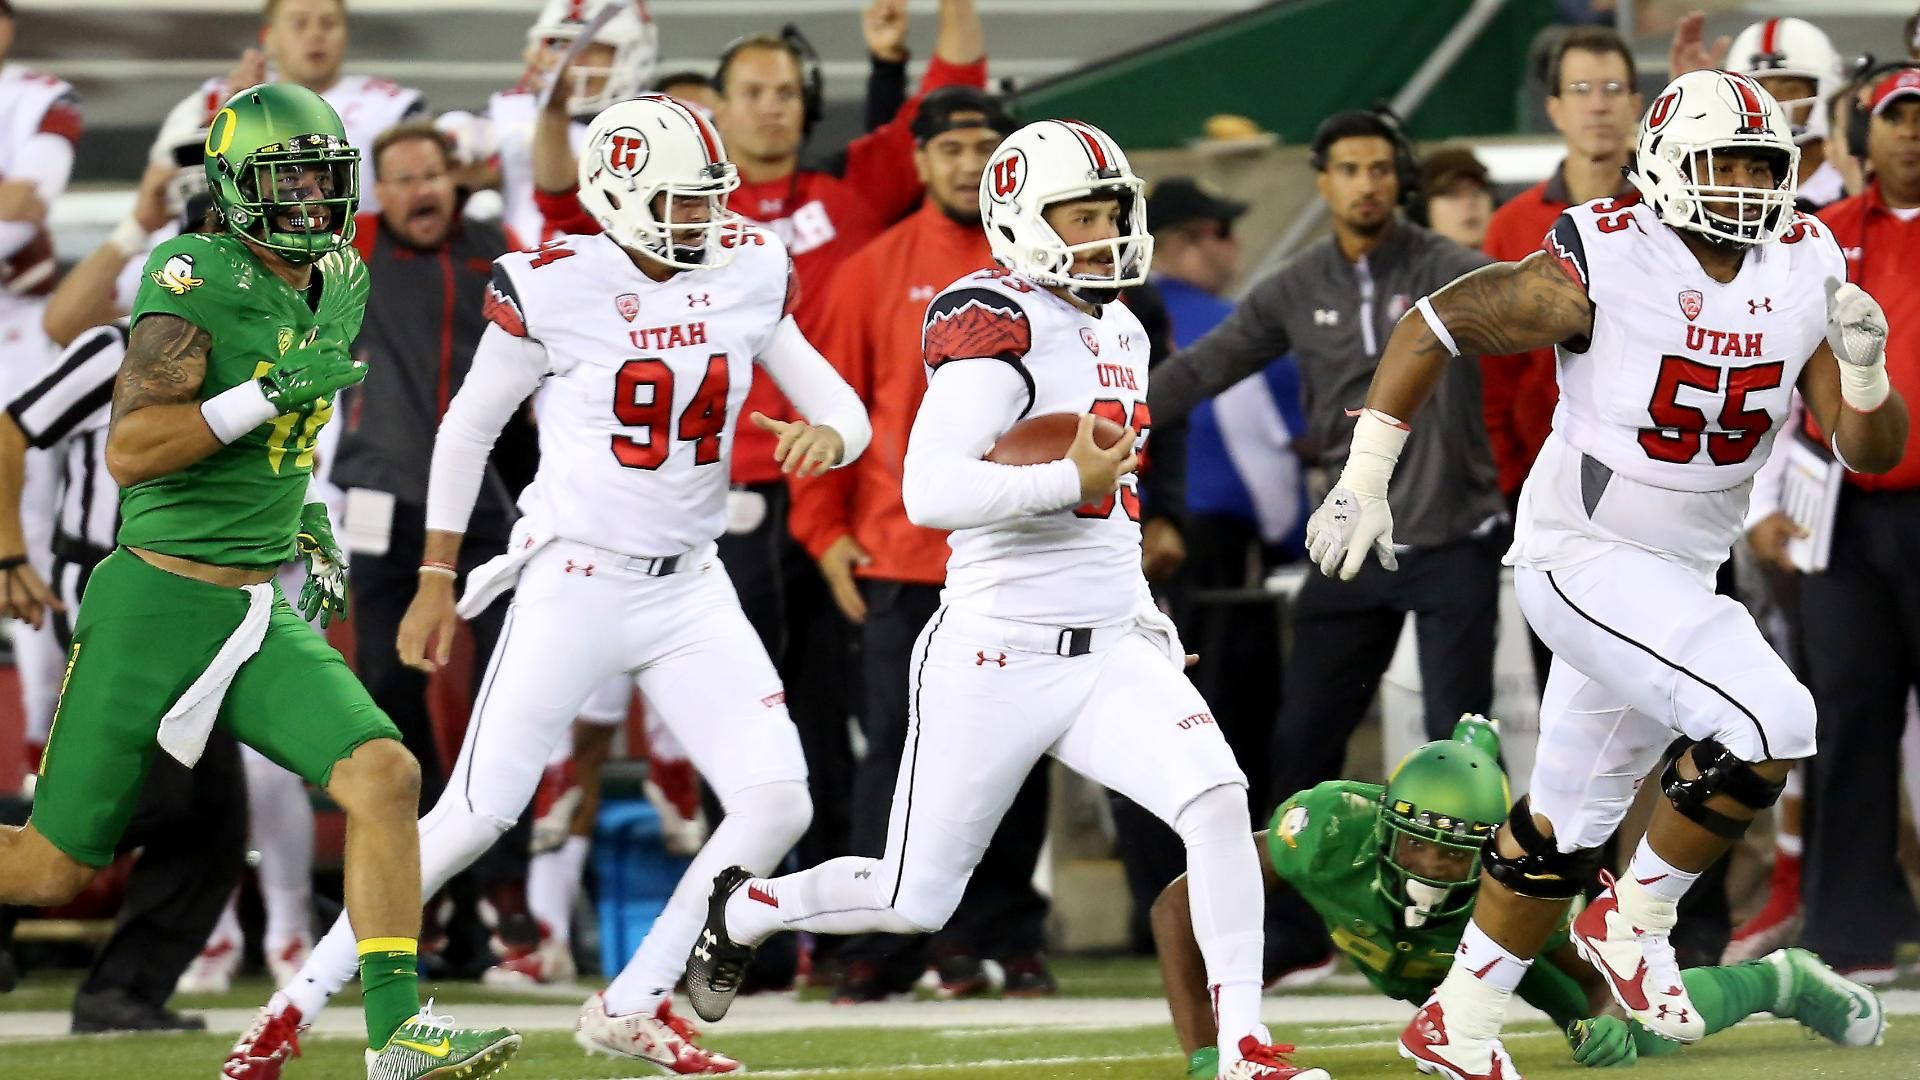 Utah steamrolls Oregon for historic loss